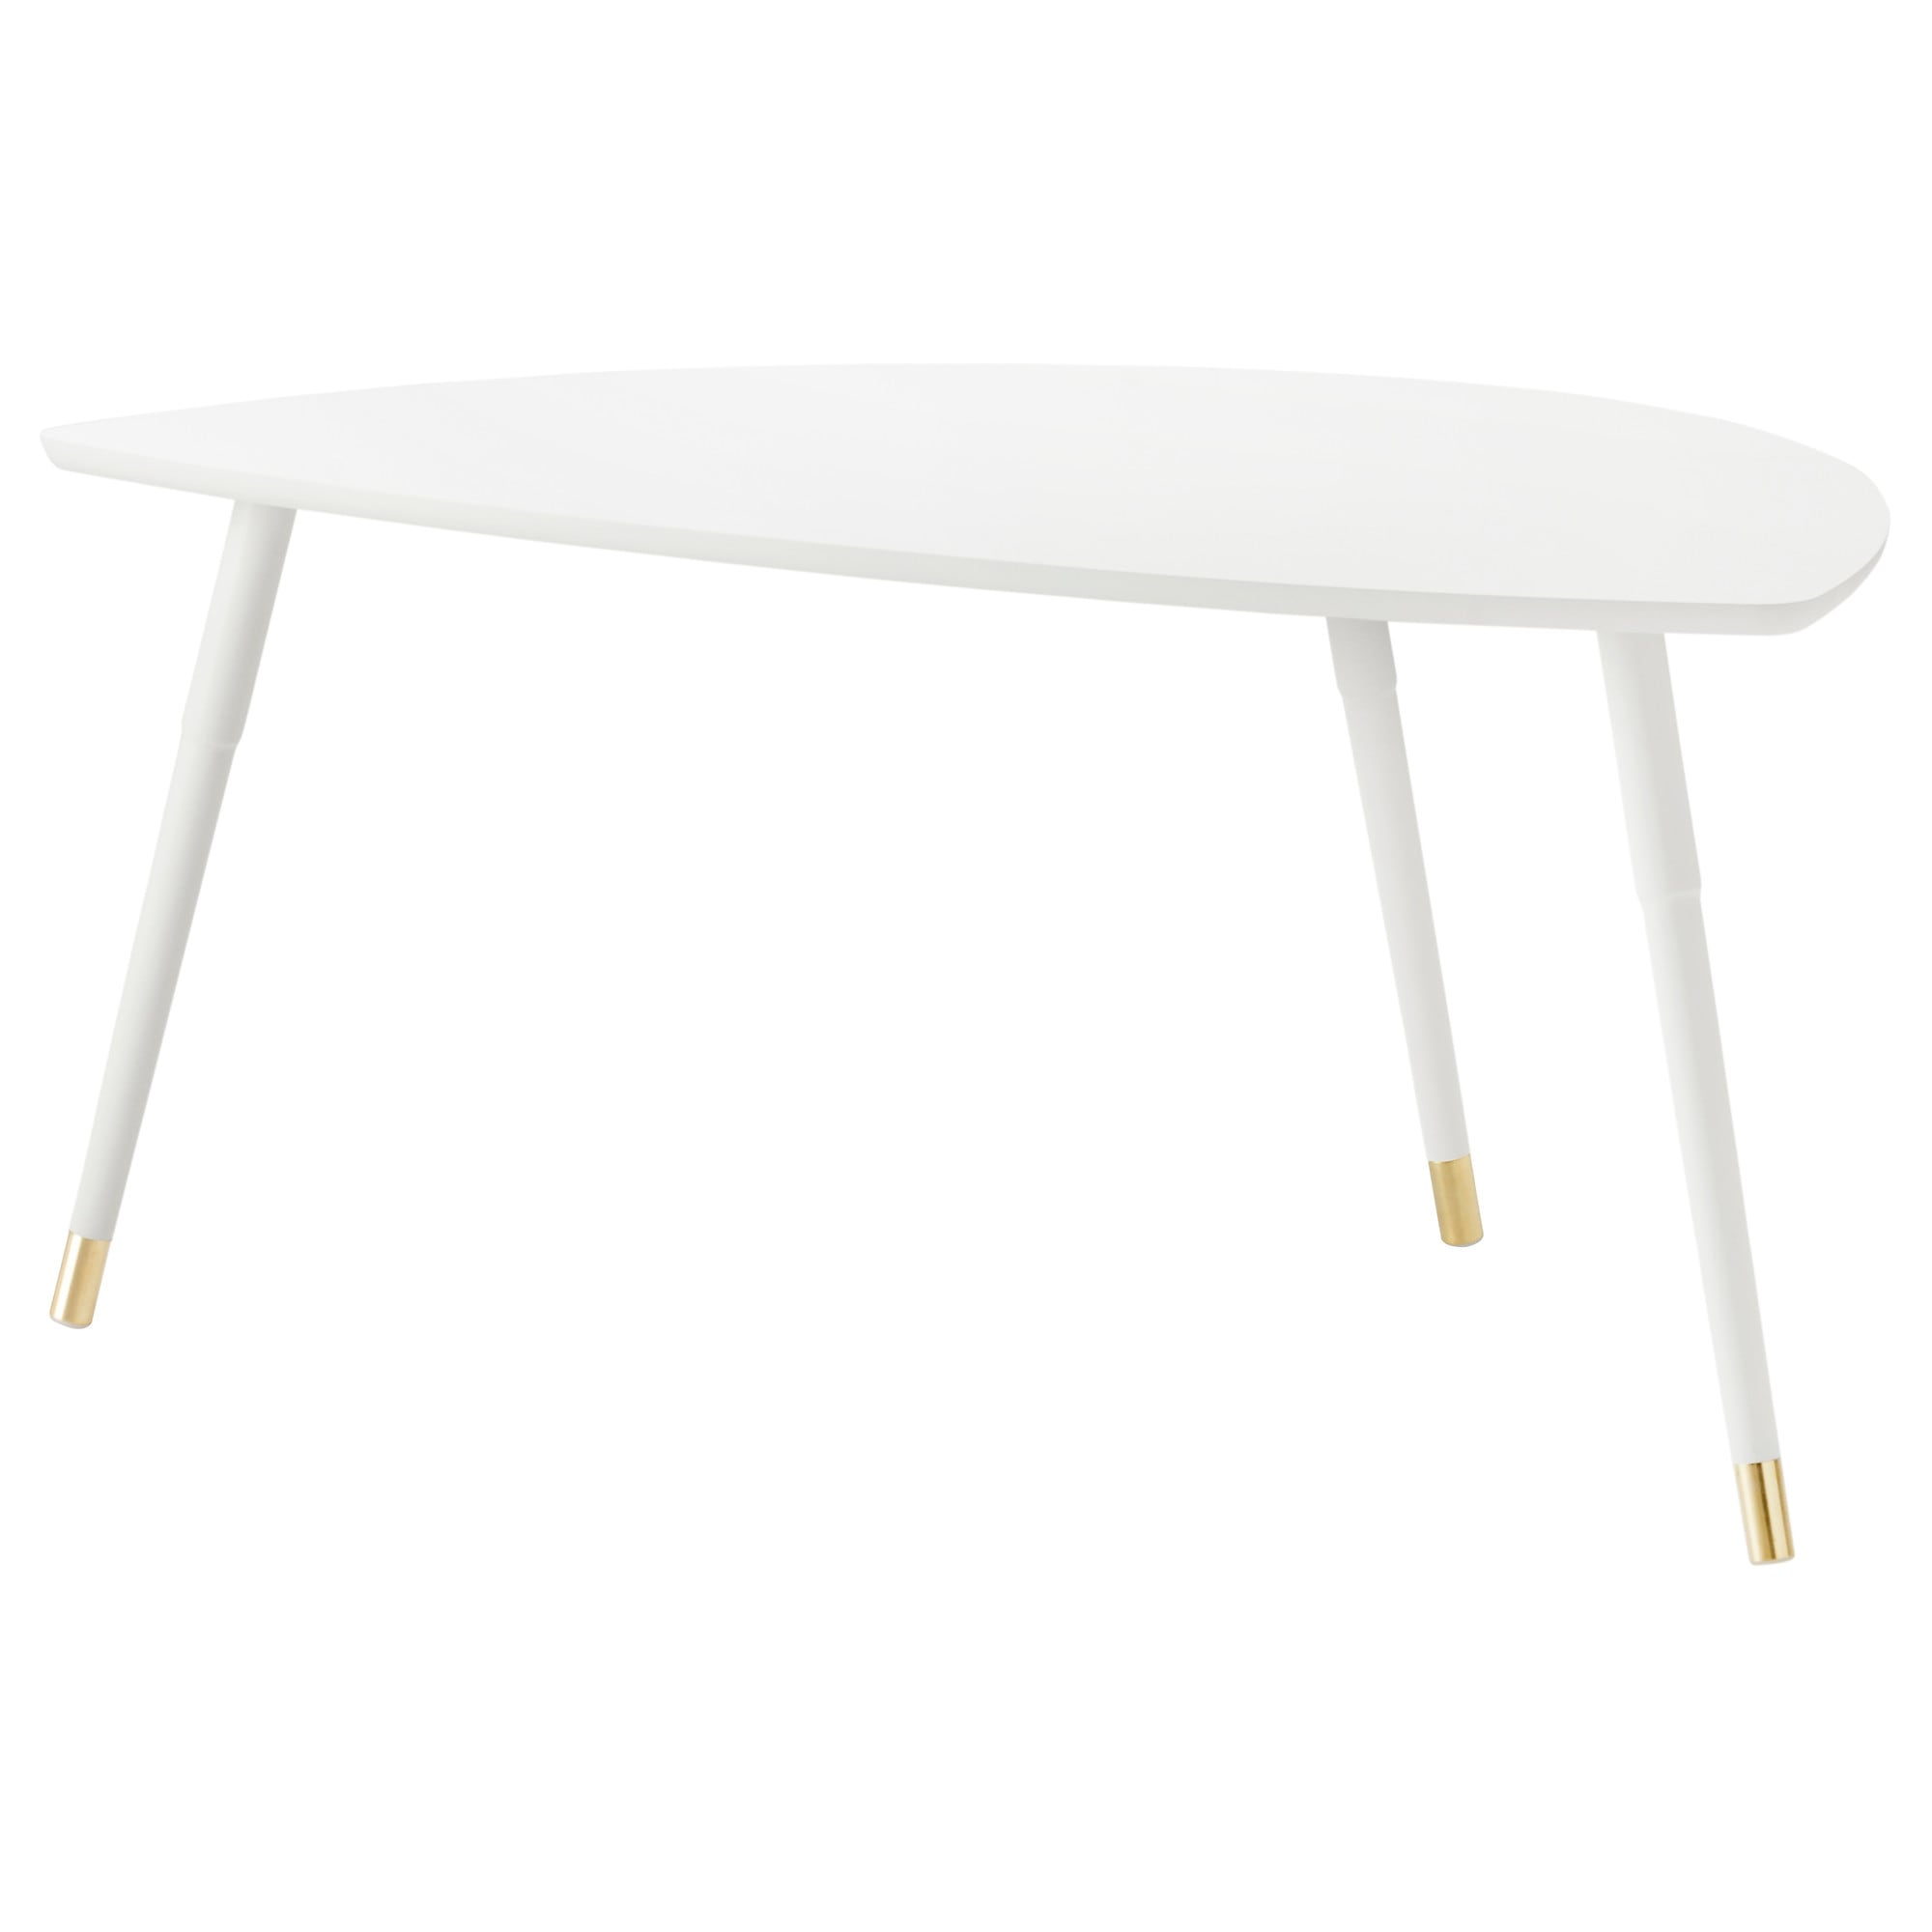 Table basse transformable chez ikea - Table basse transformable en table haute ikea ...